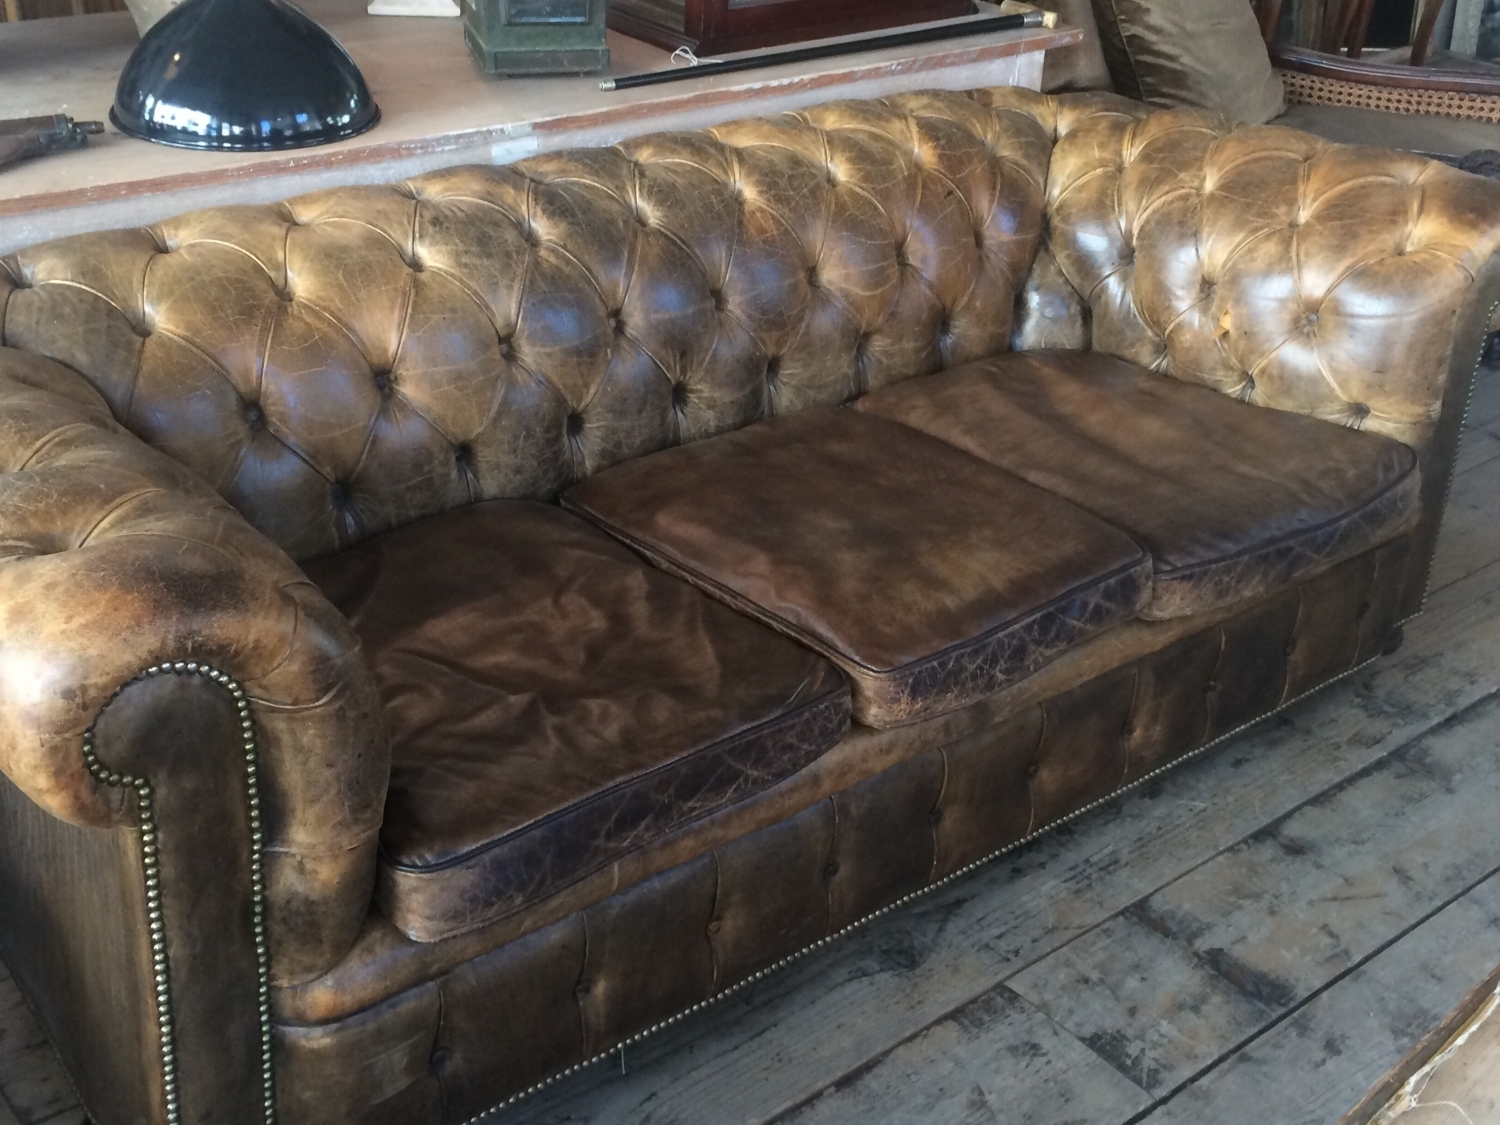 Vintage Chesterfield Sofas In Most Current Vintage Chesterfield Sofa In Furniture (Gallery 7 of 20)